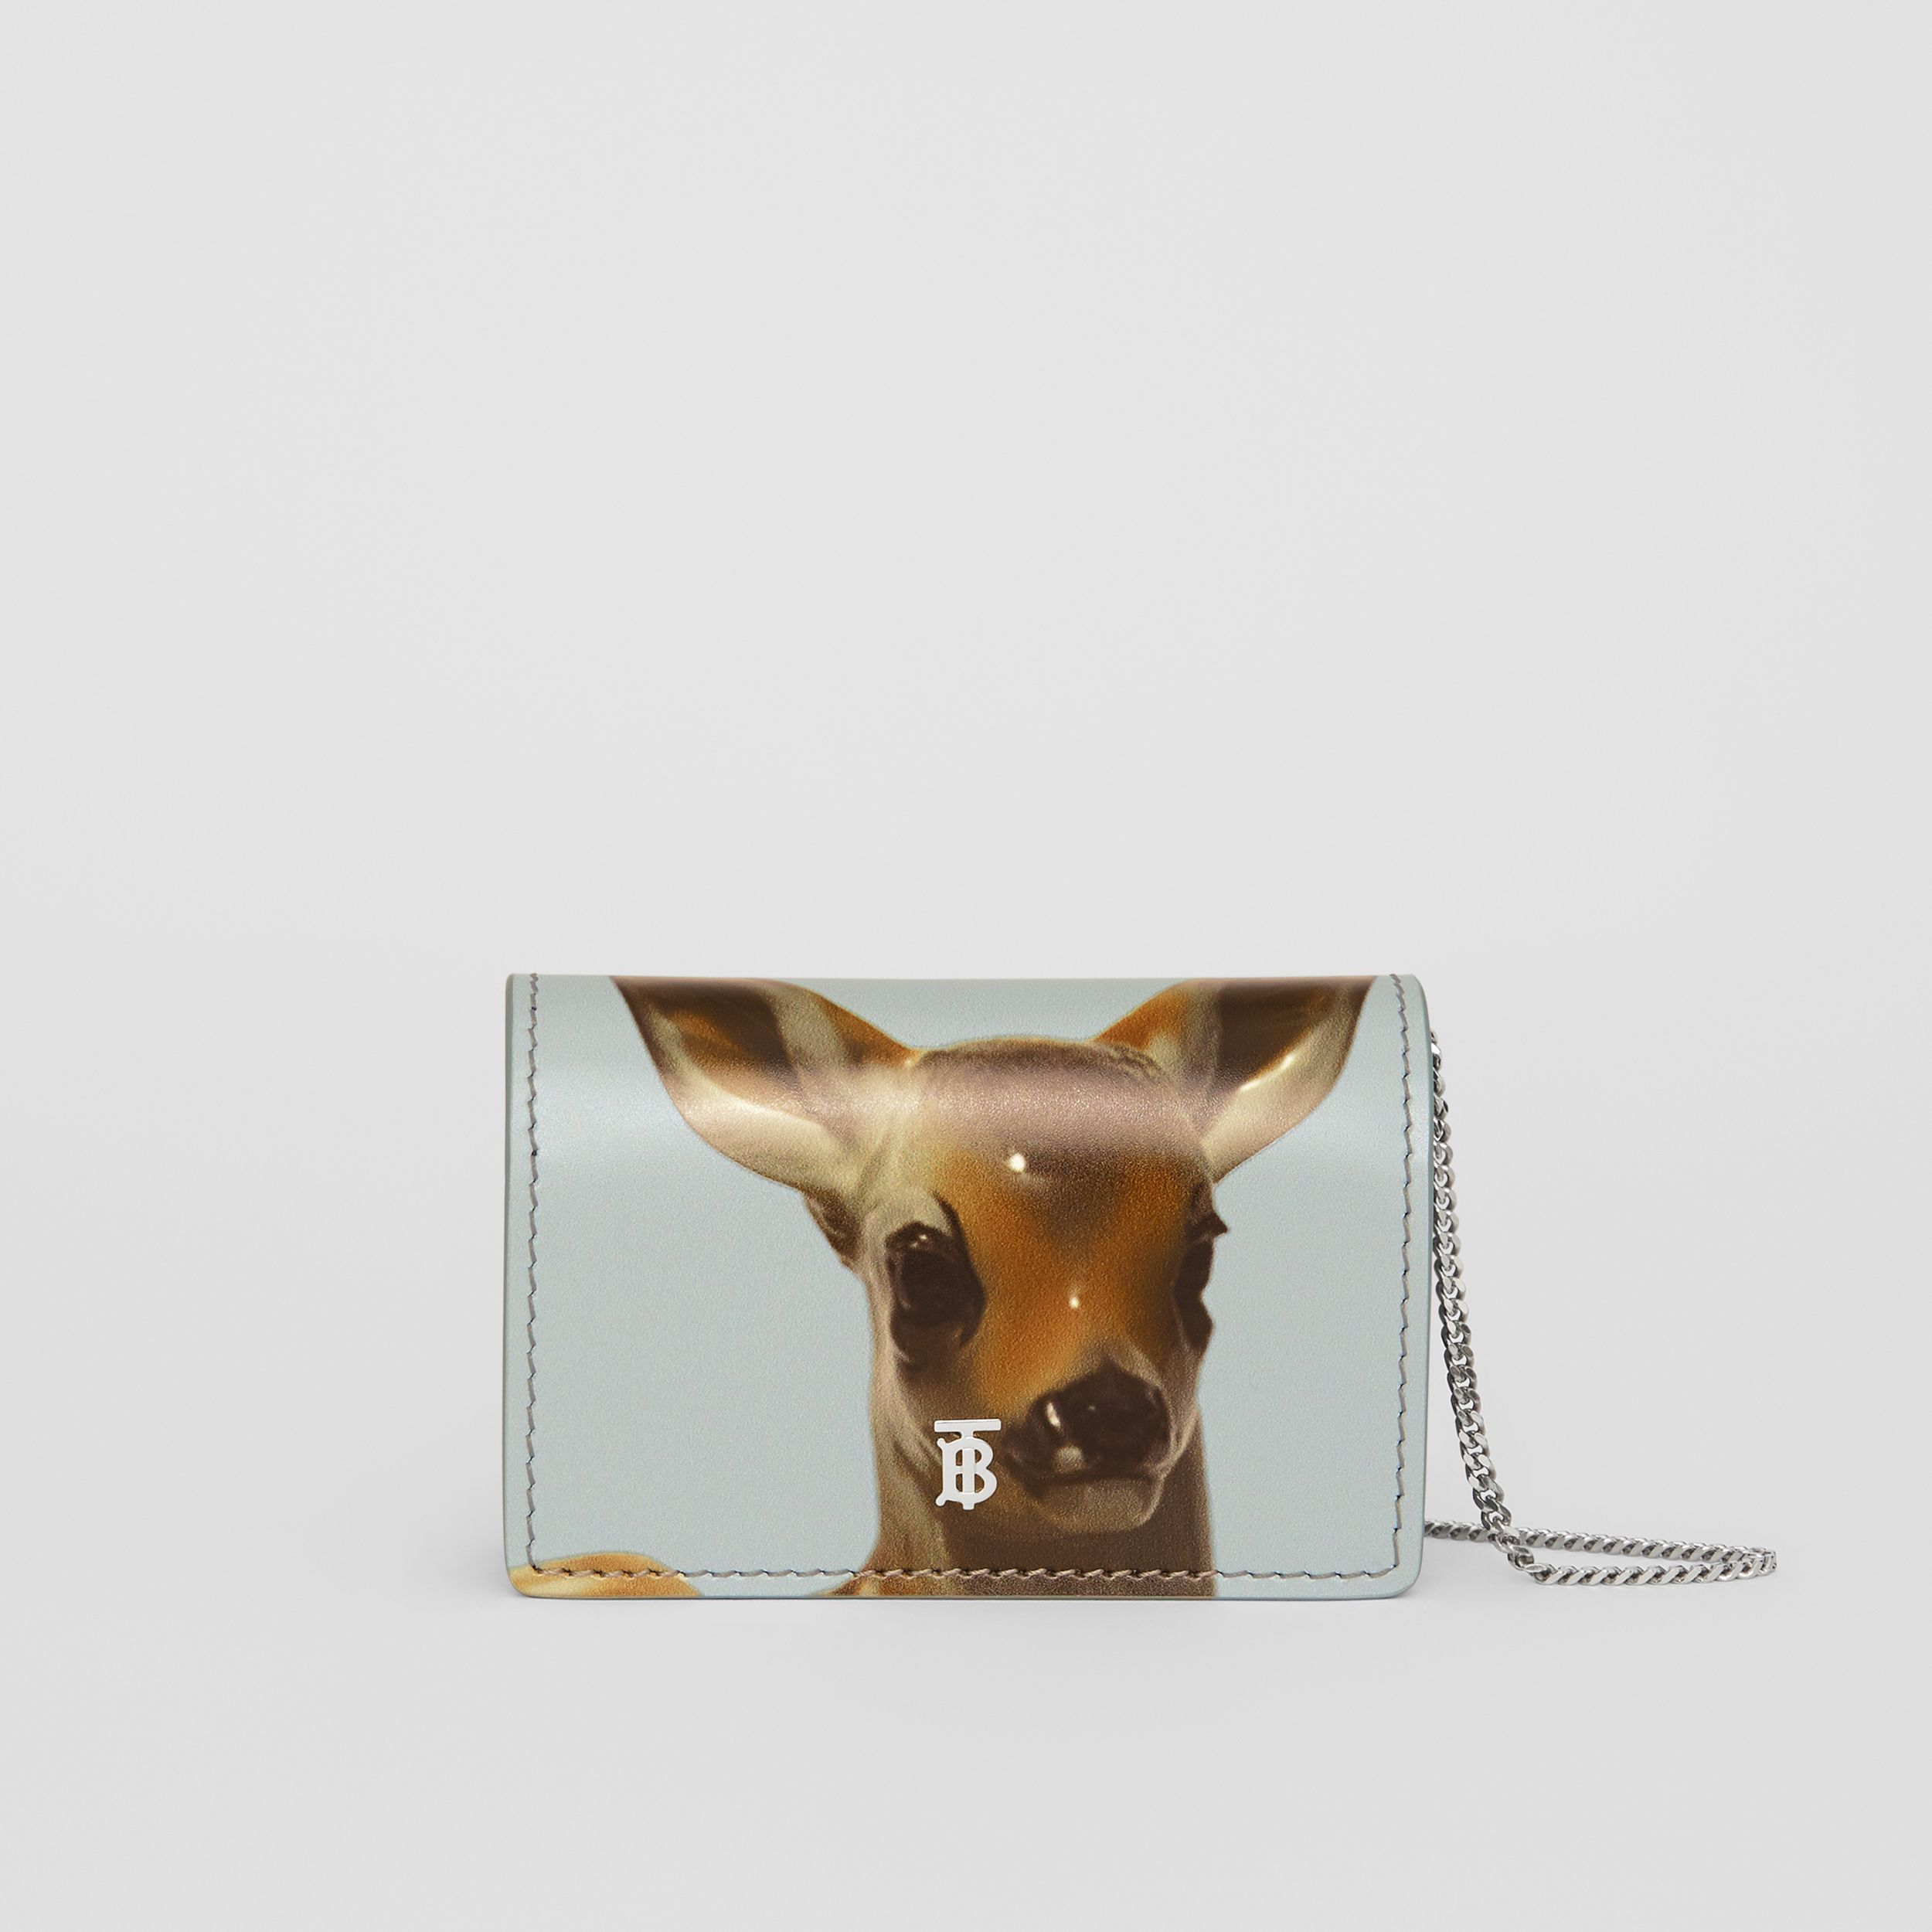 Deer Motif Leather Card Case with Detachable Strap in White | Burberry - 1